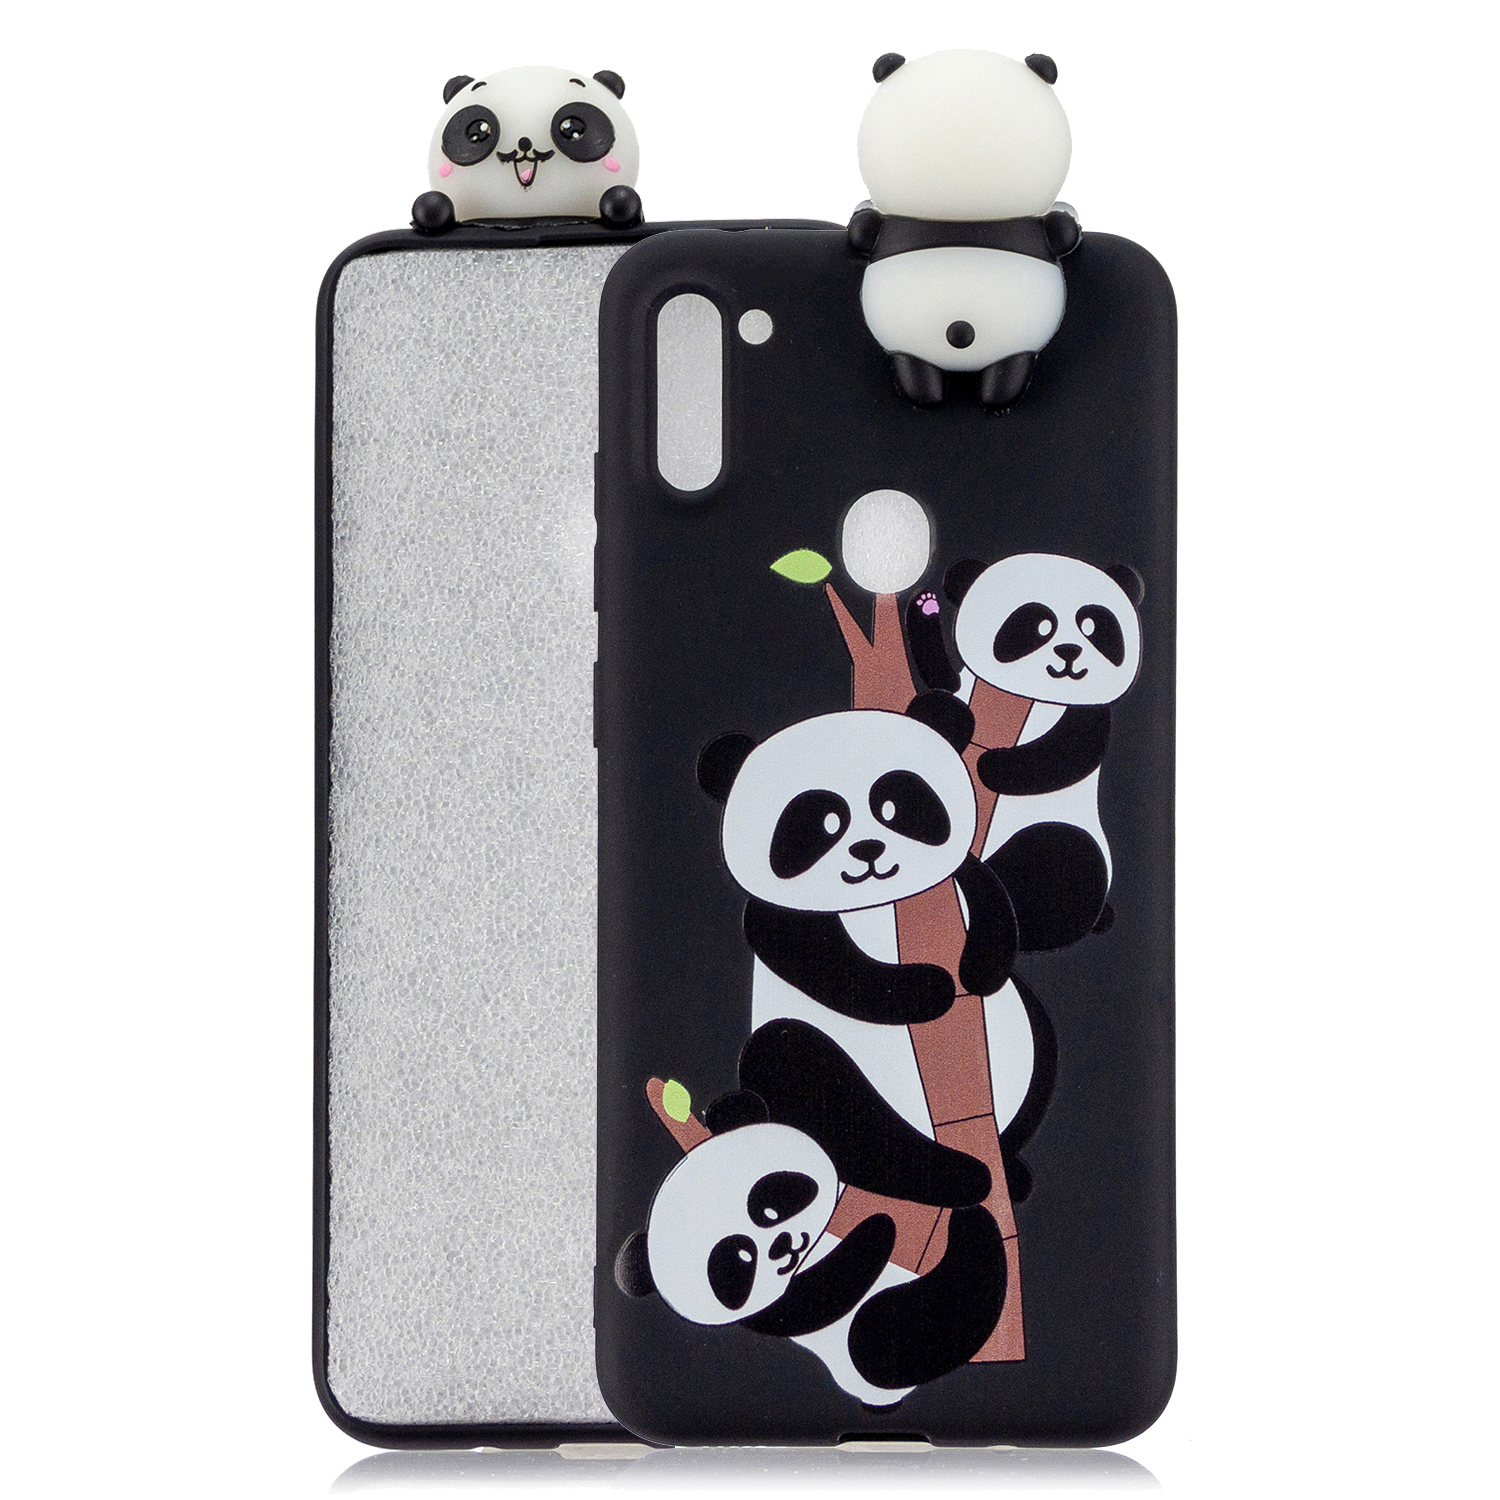 For Samsung A11 Soft TPU Back Cover 3D Cartoon Painting Mobile Phone Case Shell Three pandas